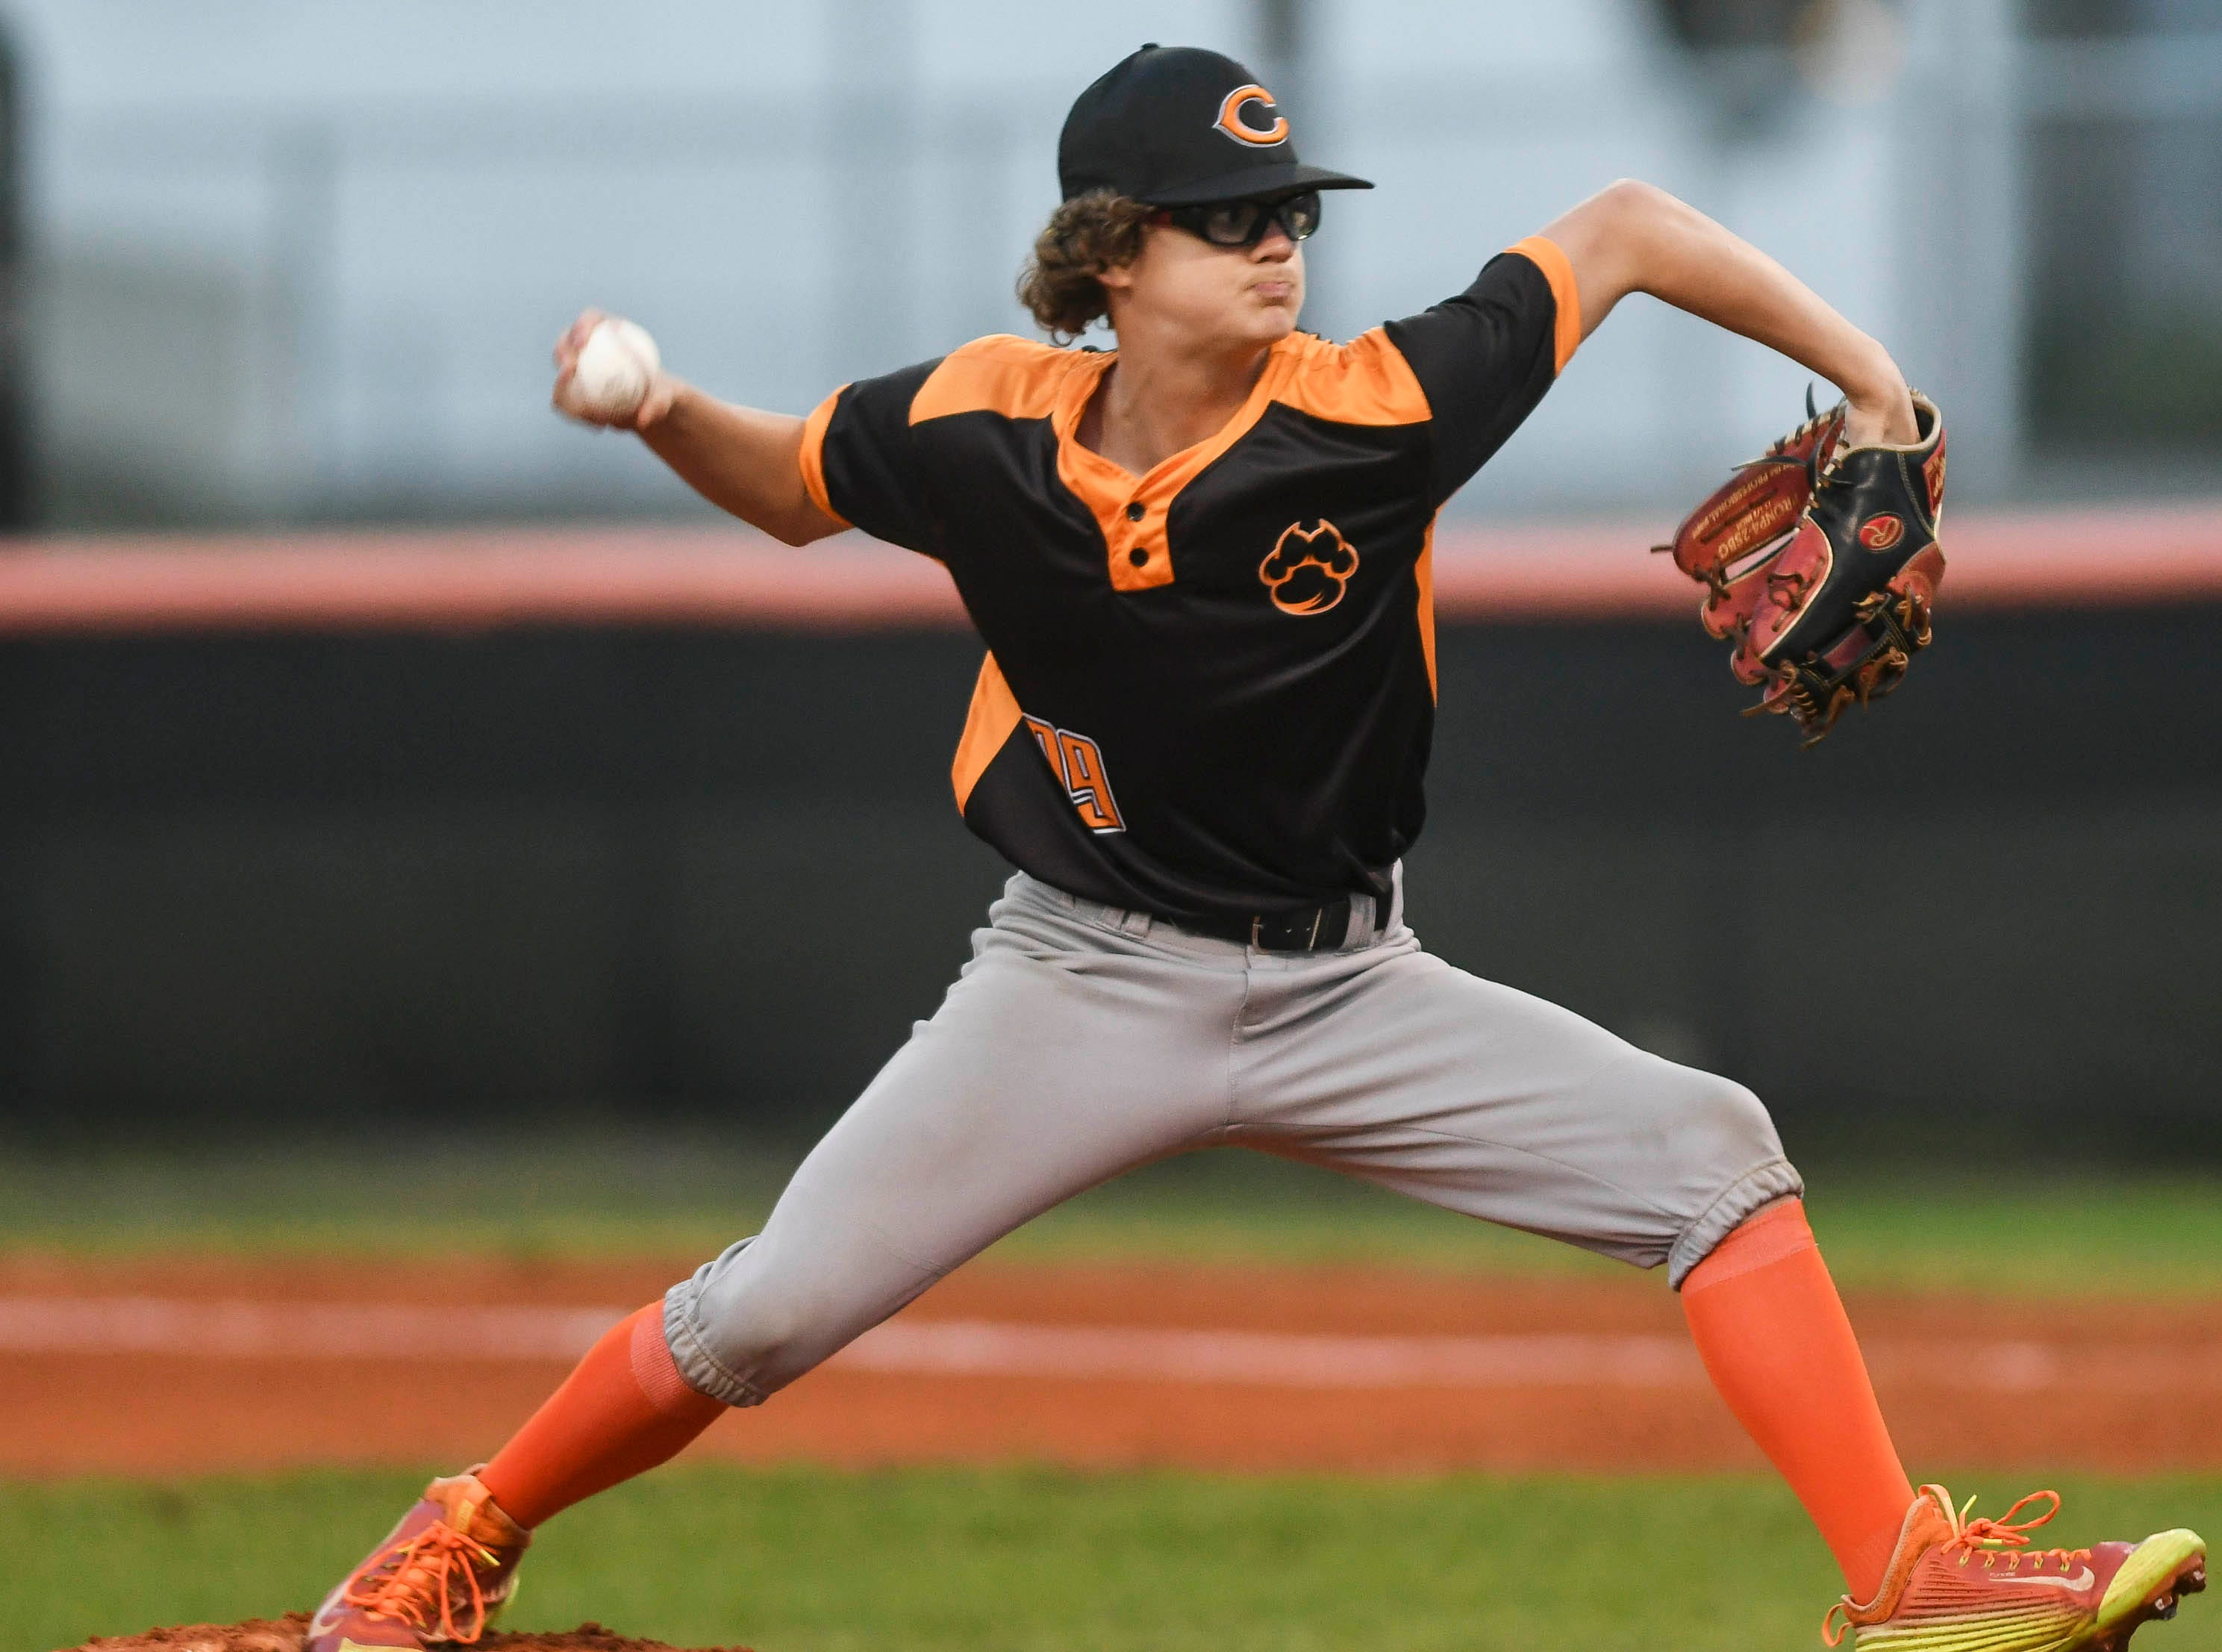 Dalton Ruth pitches for Cocoa during Friday's game against Titusville.